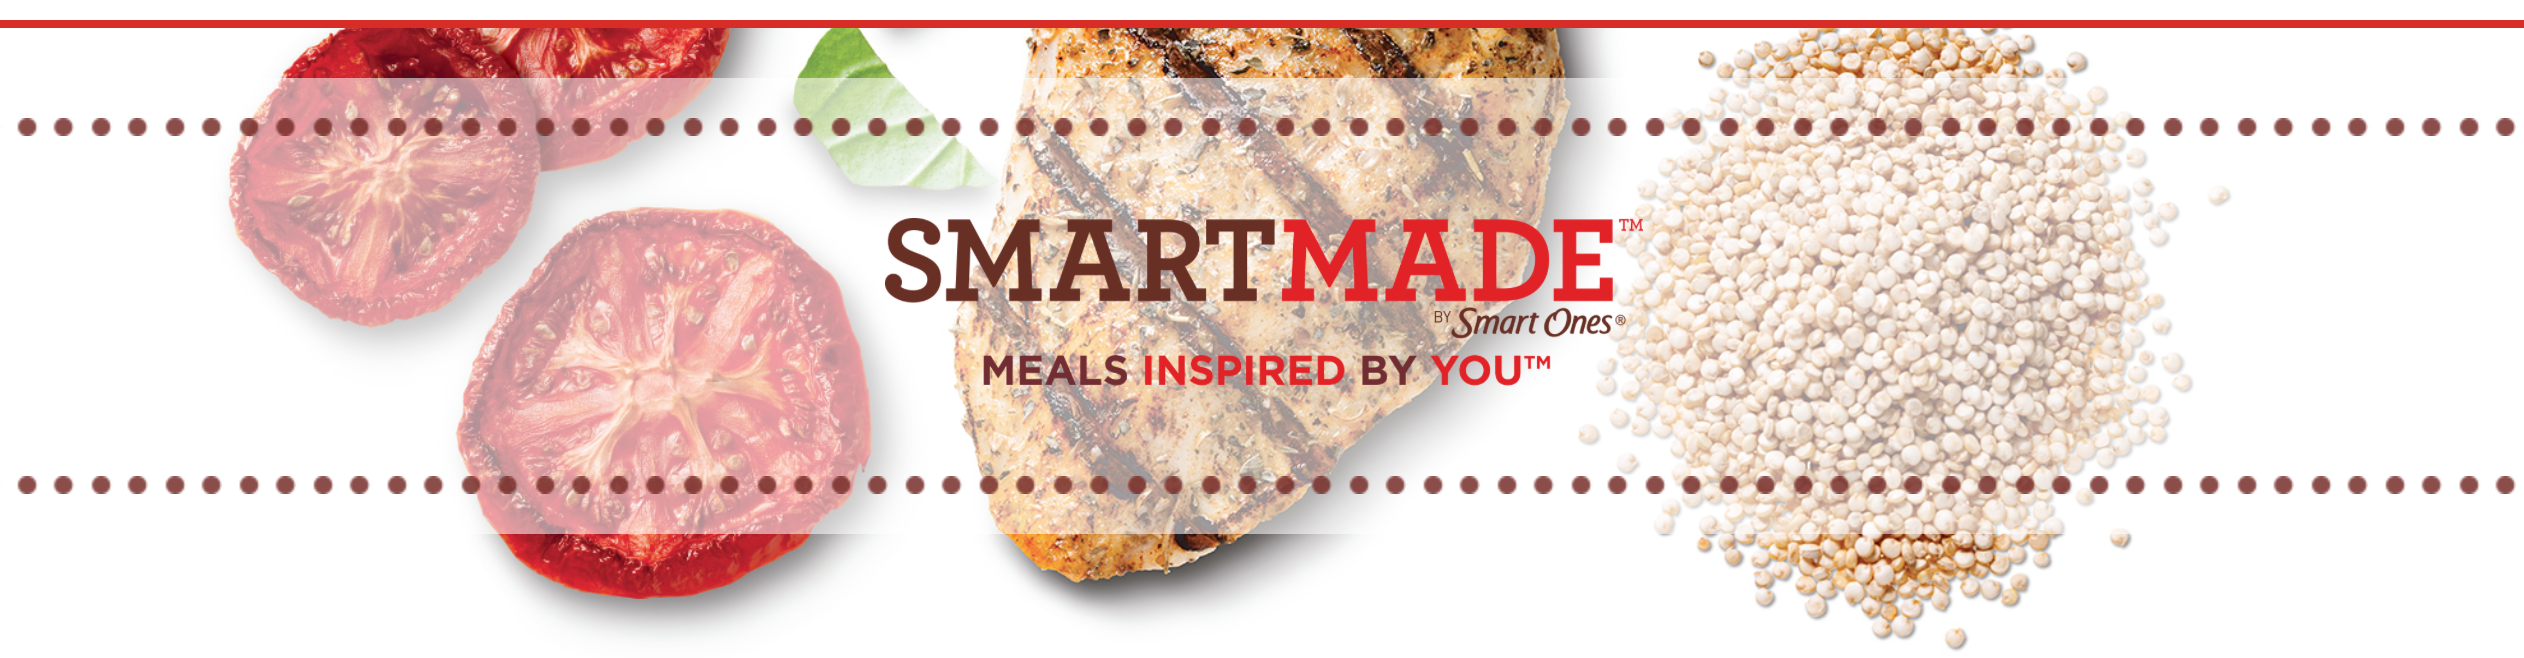 SmartMade by Smart Ones